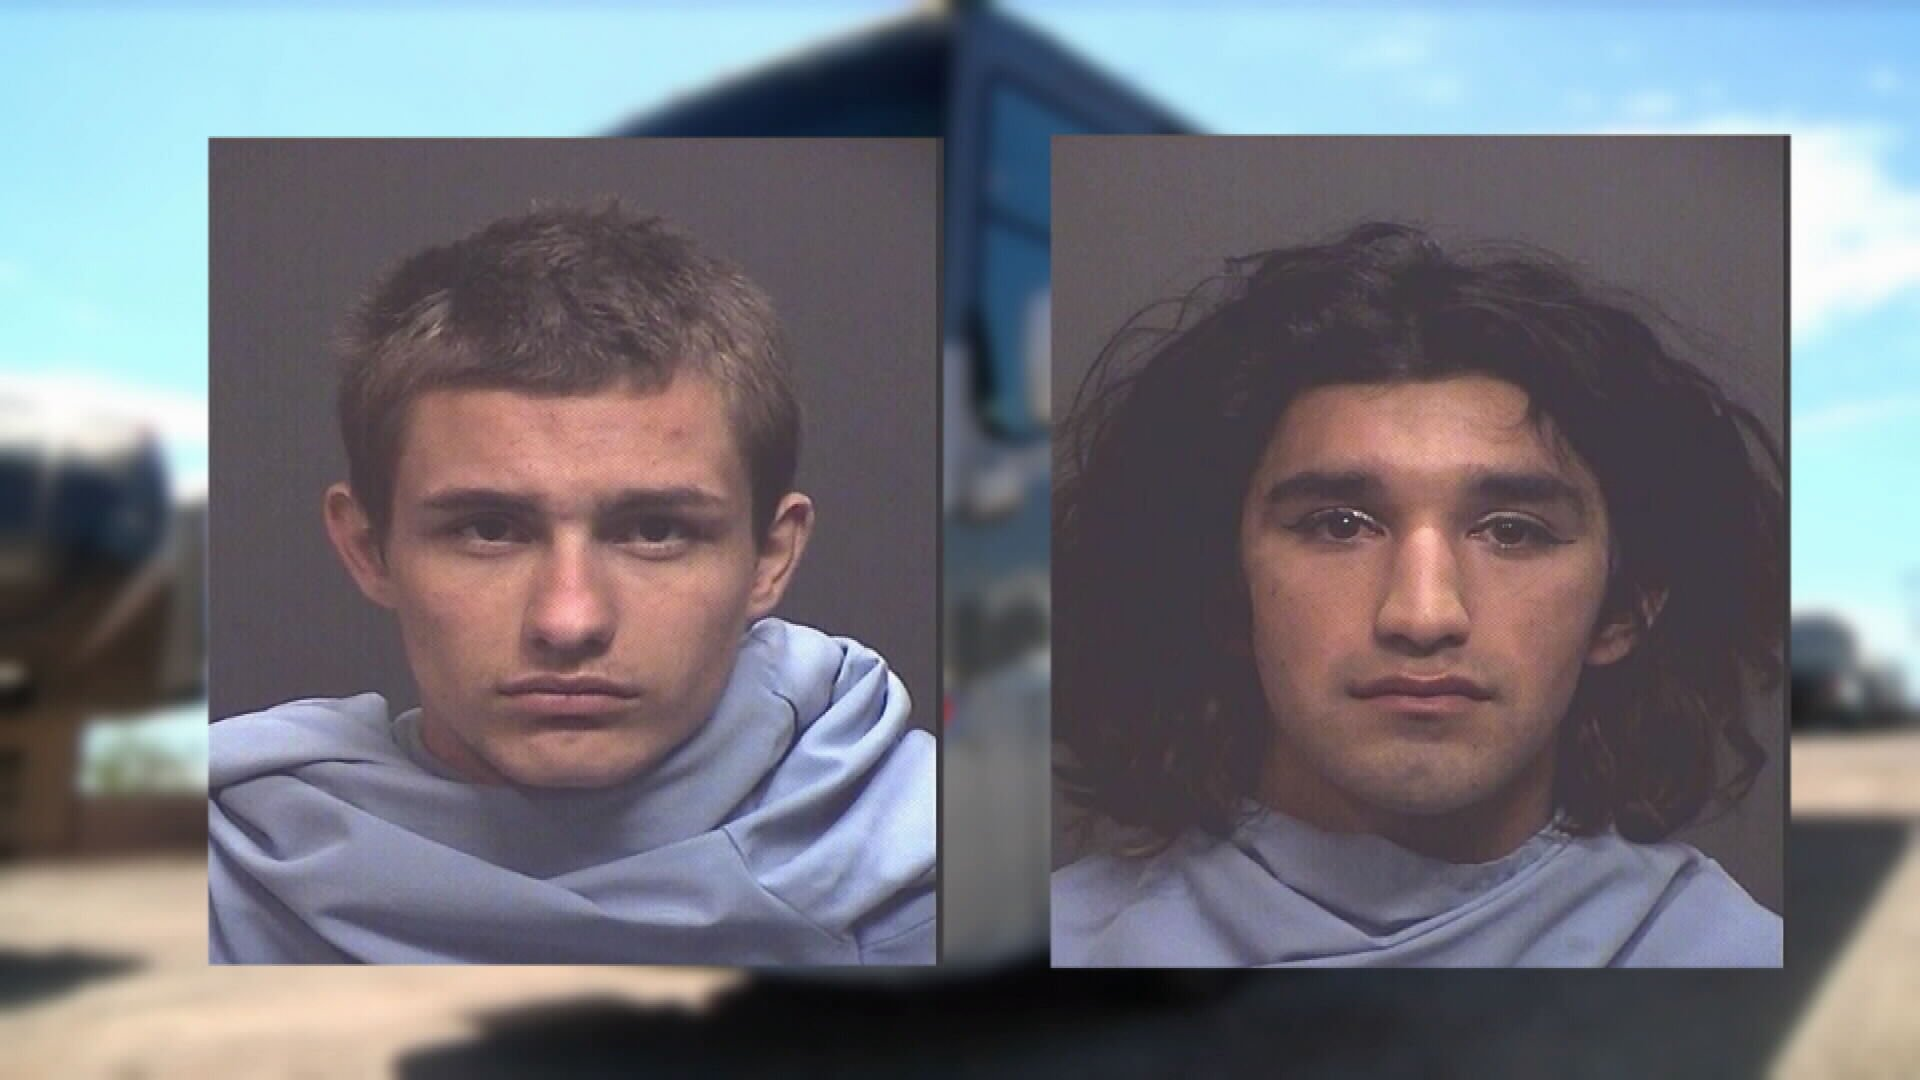 Suspects Gabriel Cunningham and Jesus Robles